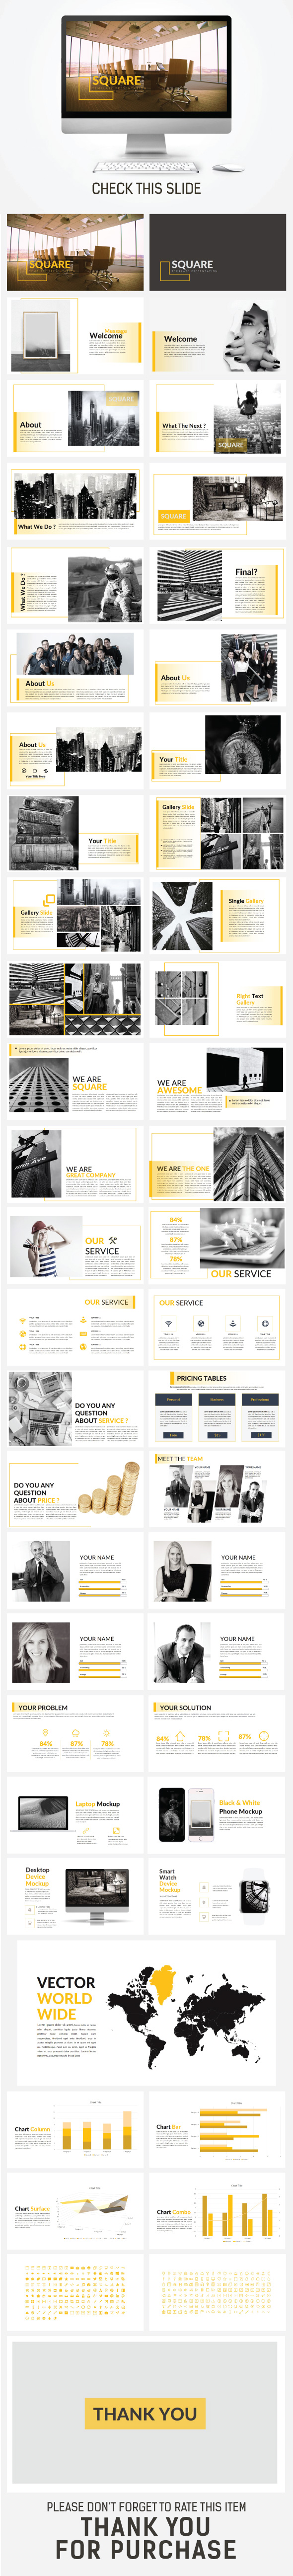 SQUARE Powerpoint Template - Business PowerPoint Templates